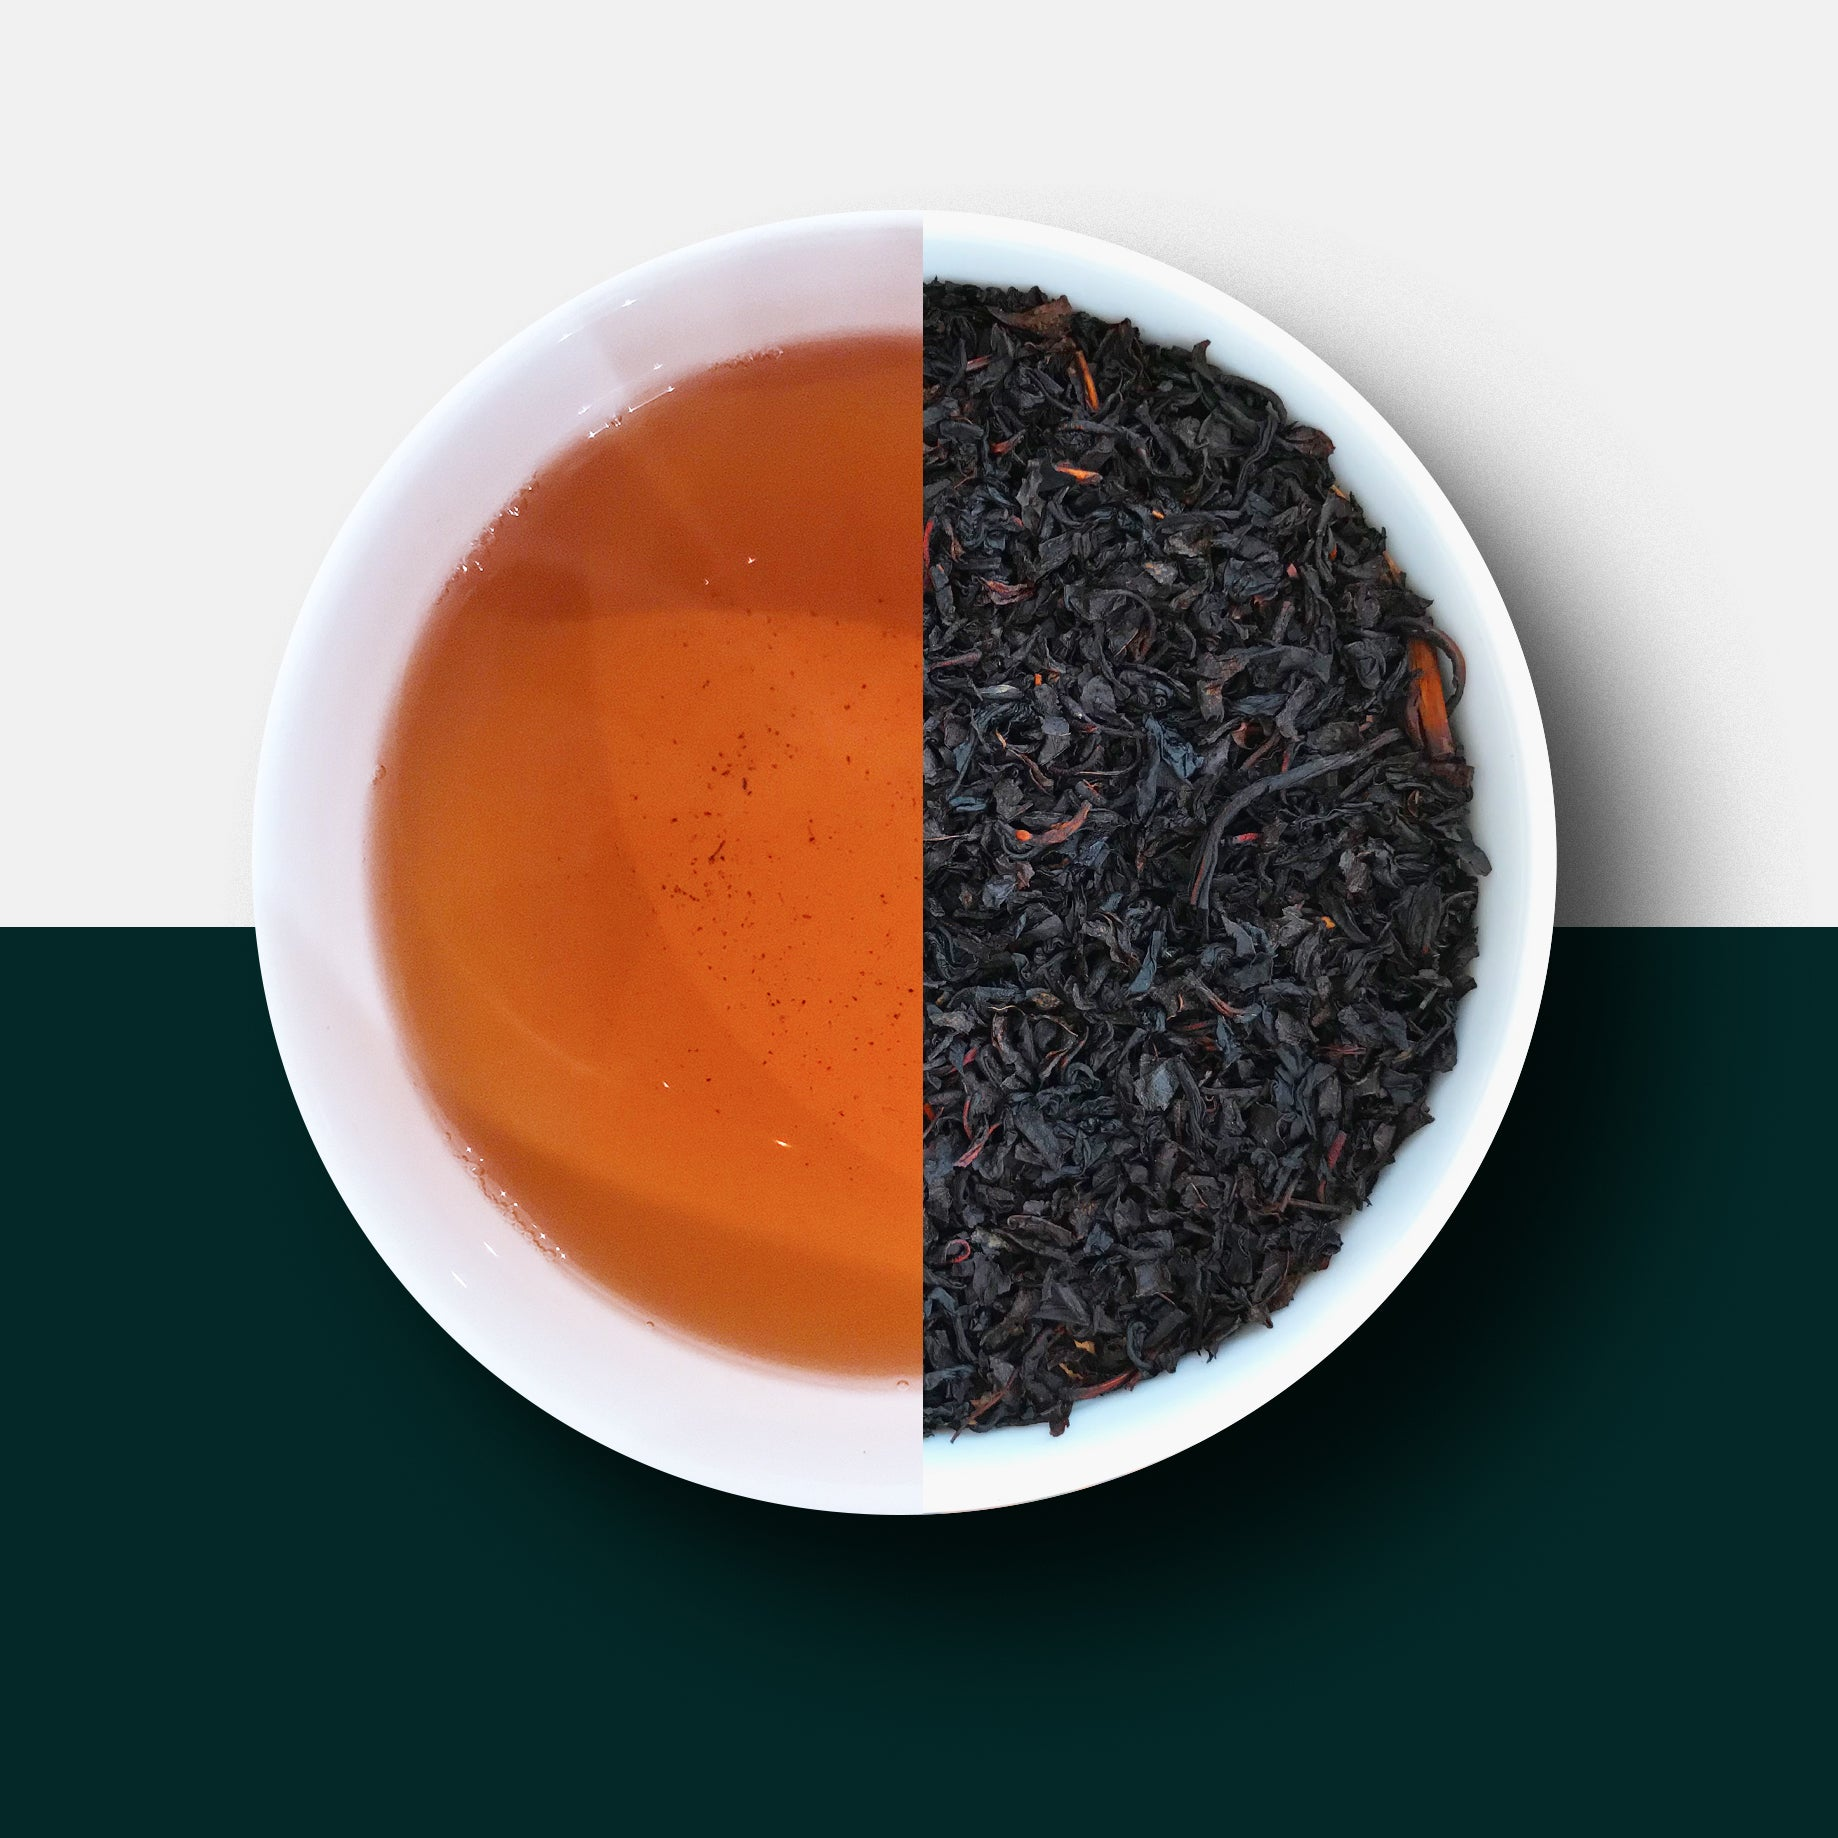 Decaf tea, earl grey tea and leaves